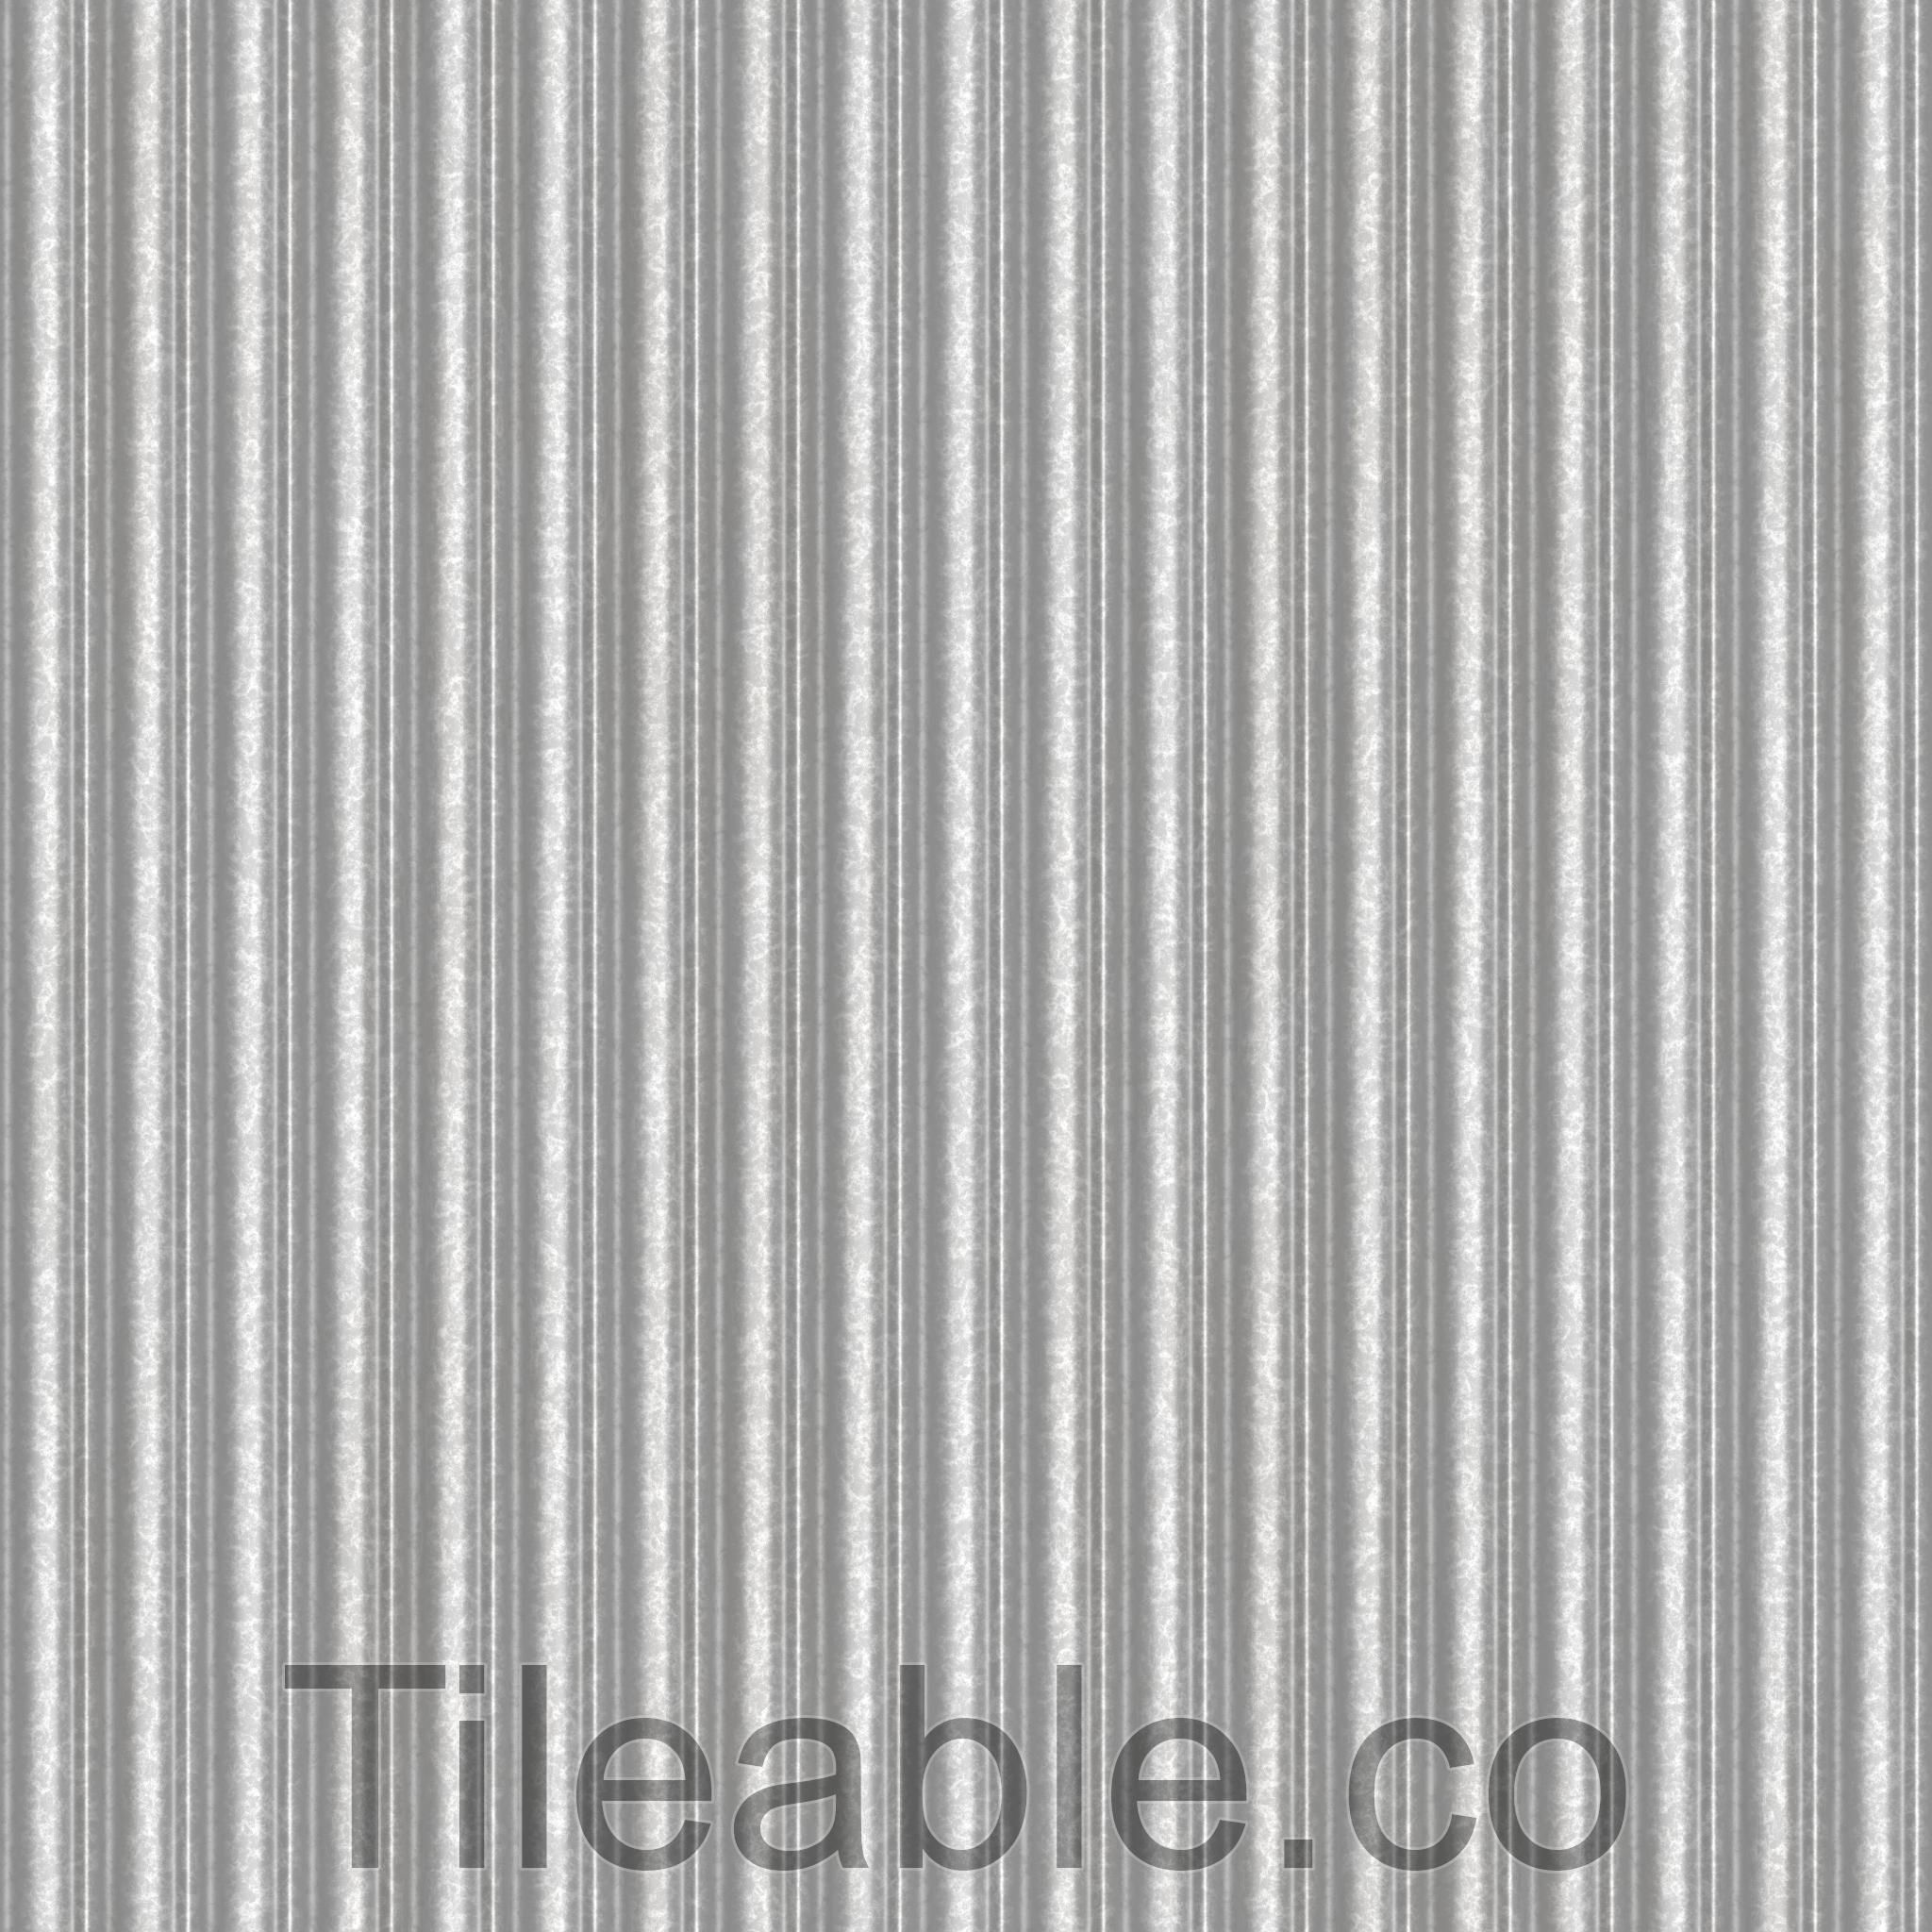 Corrugated Roof Sheet Awsome Texture With All 3d Modelling Maps Included Get A 512 512 Px Copy Of This Texture Corrugated Roofing Roofing Sheets Corrugated